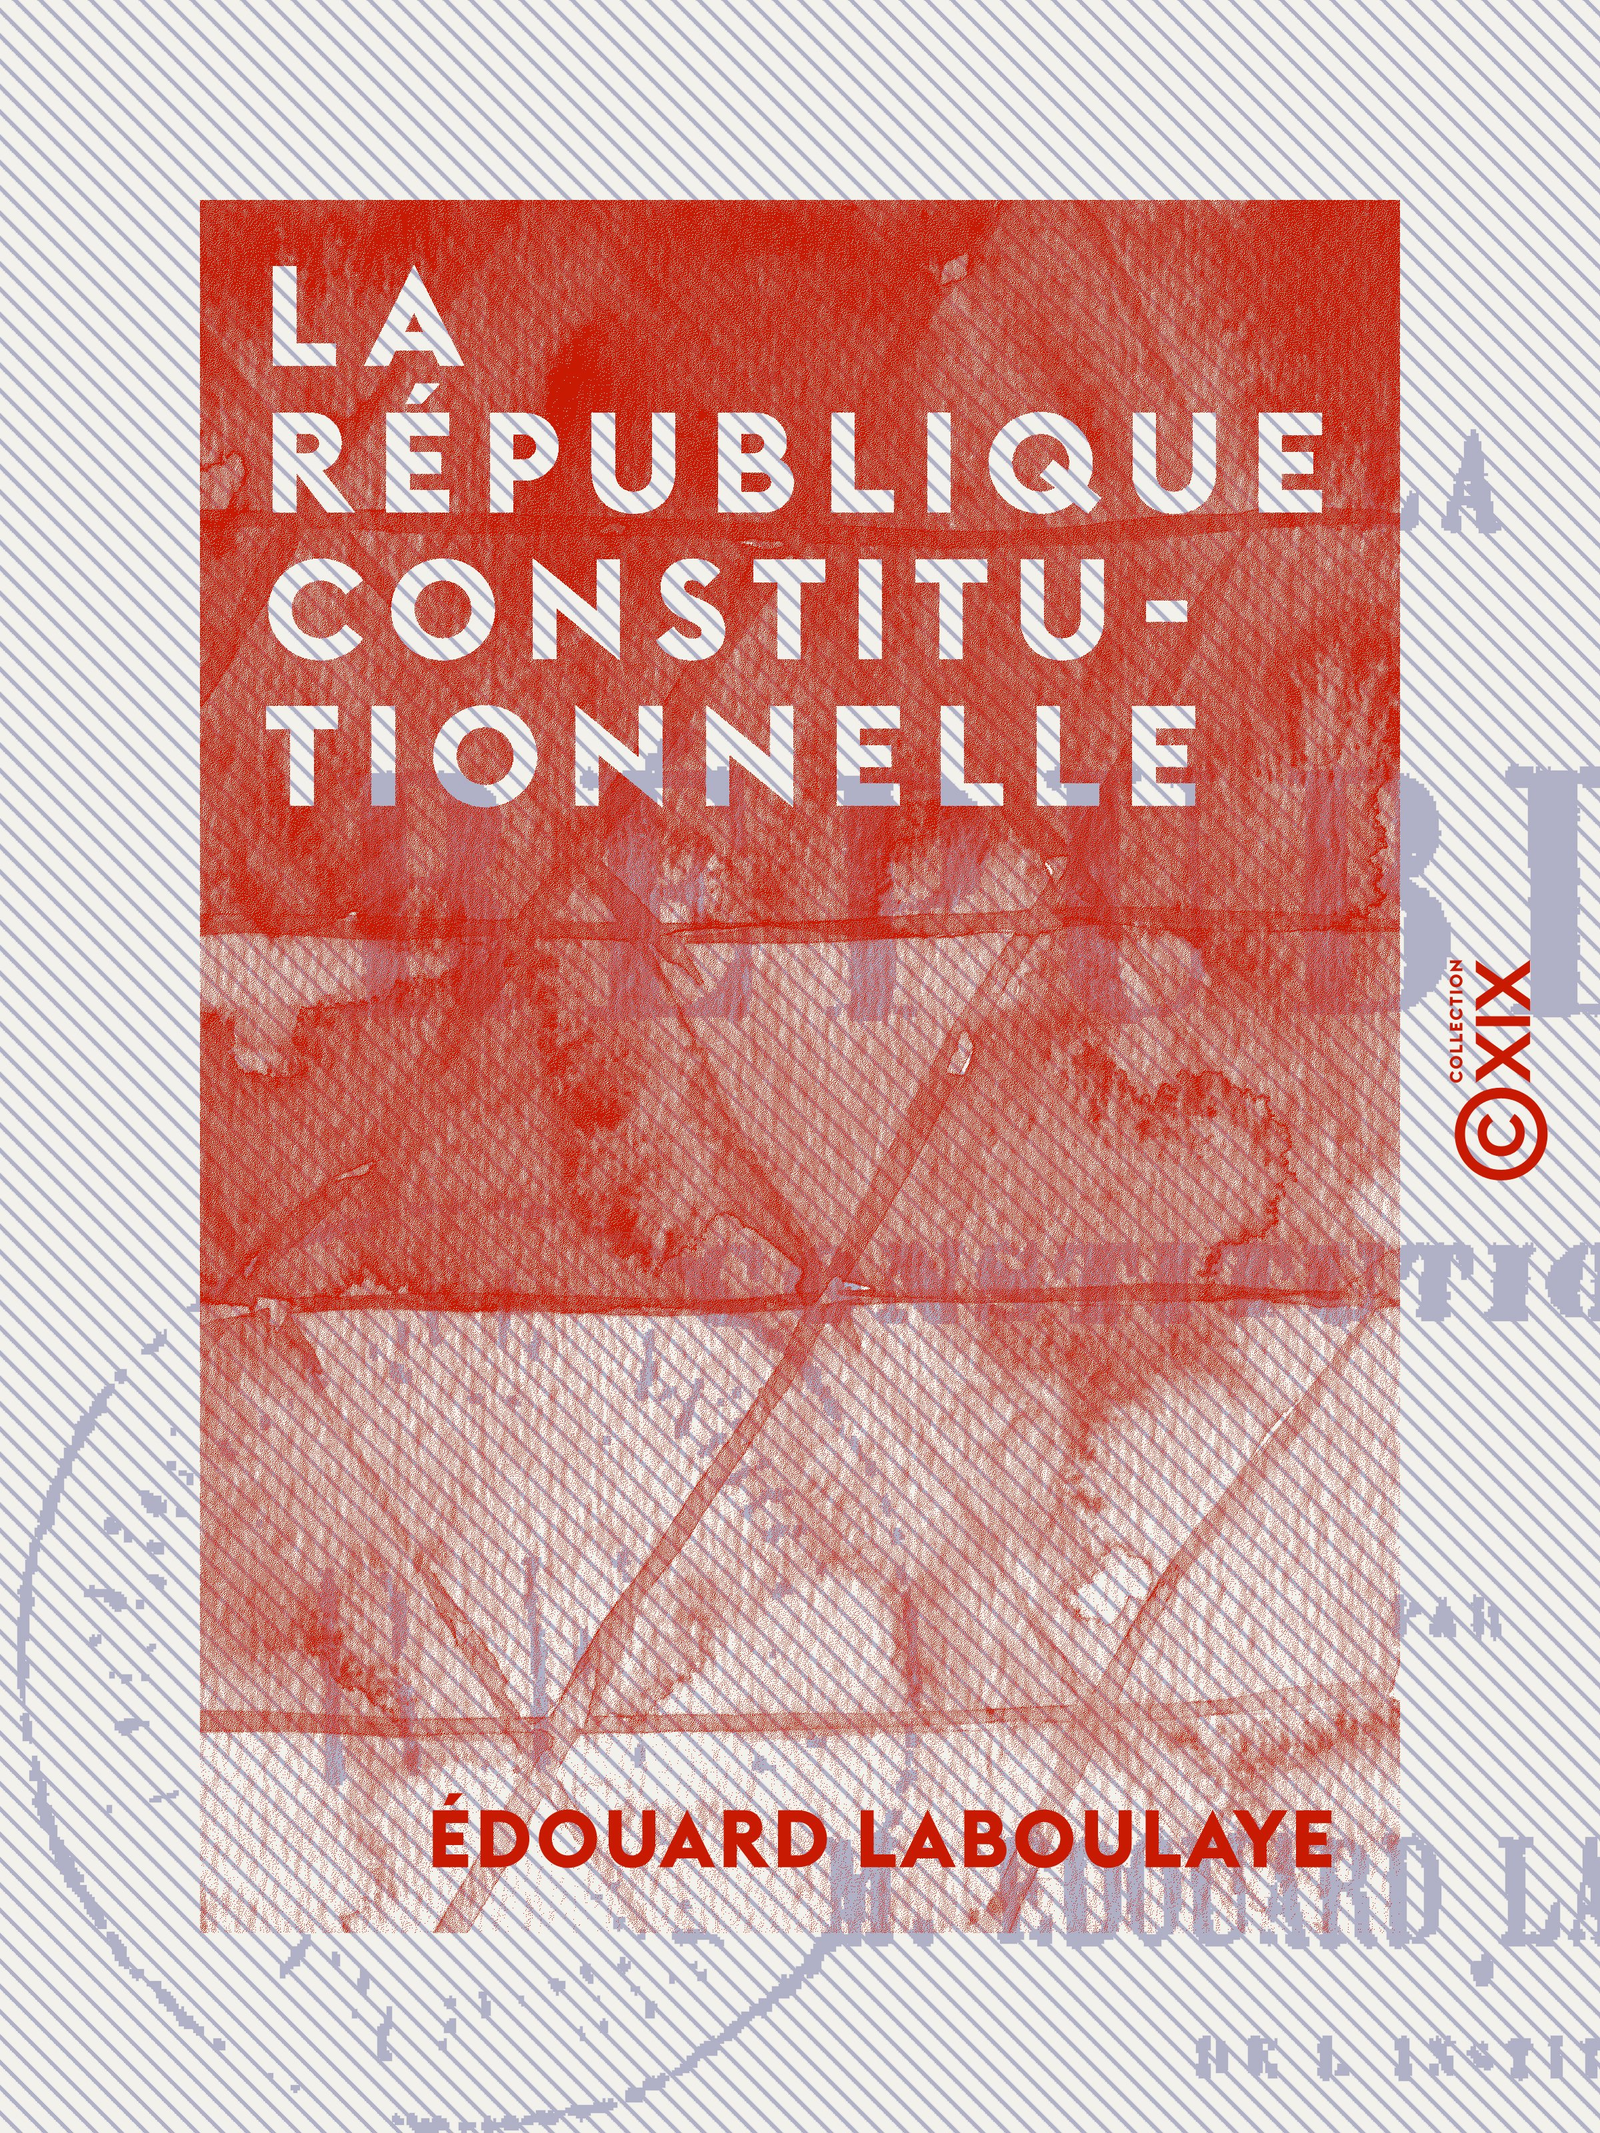 La République constitutionnelle